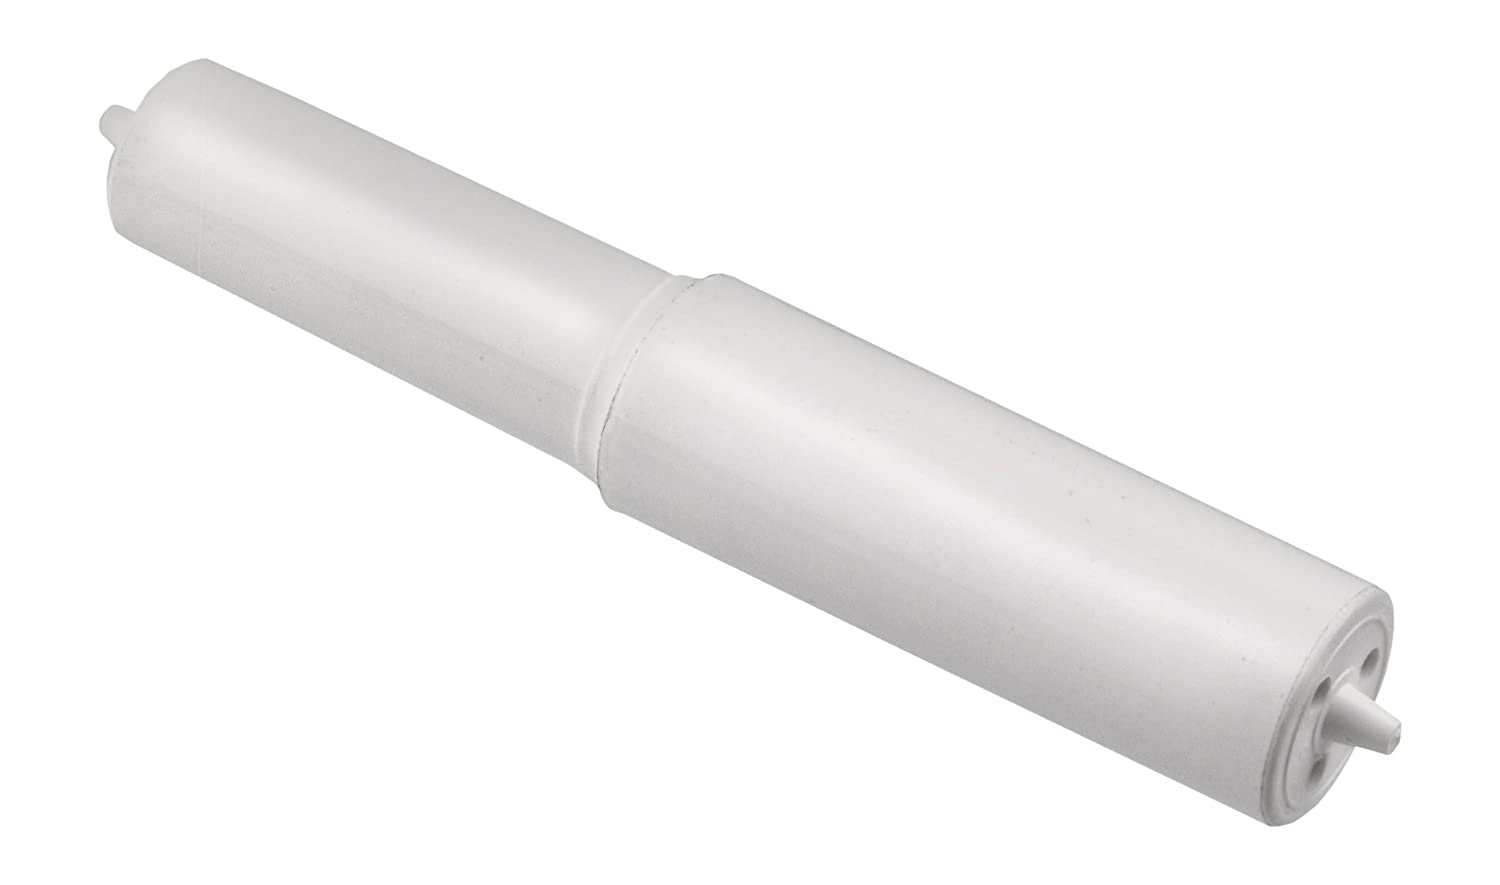 CORNAT T364698 Replacement roll for Toilet Paper Holder Plastic